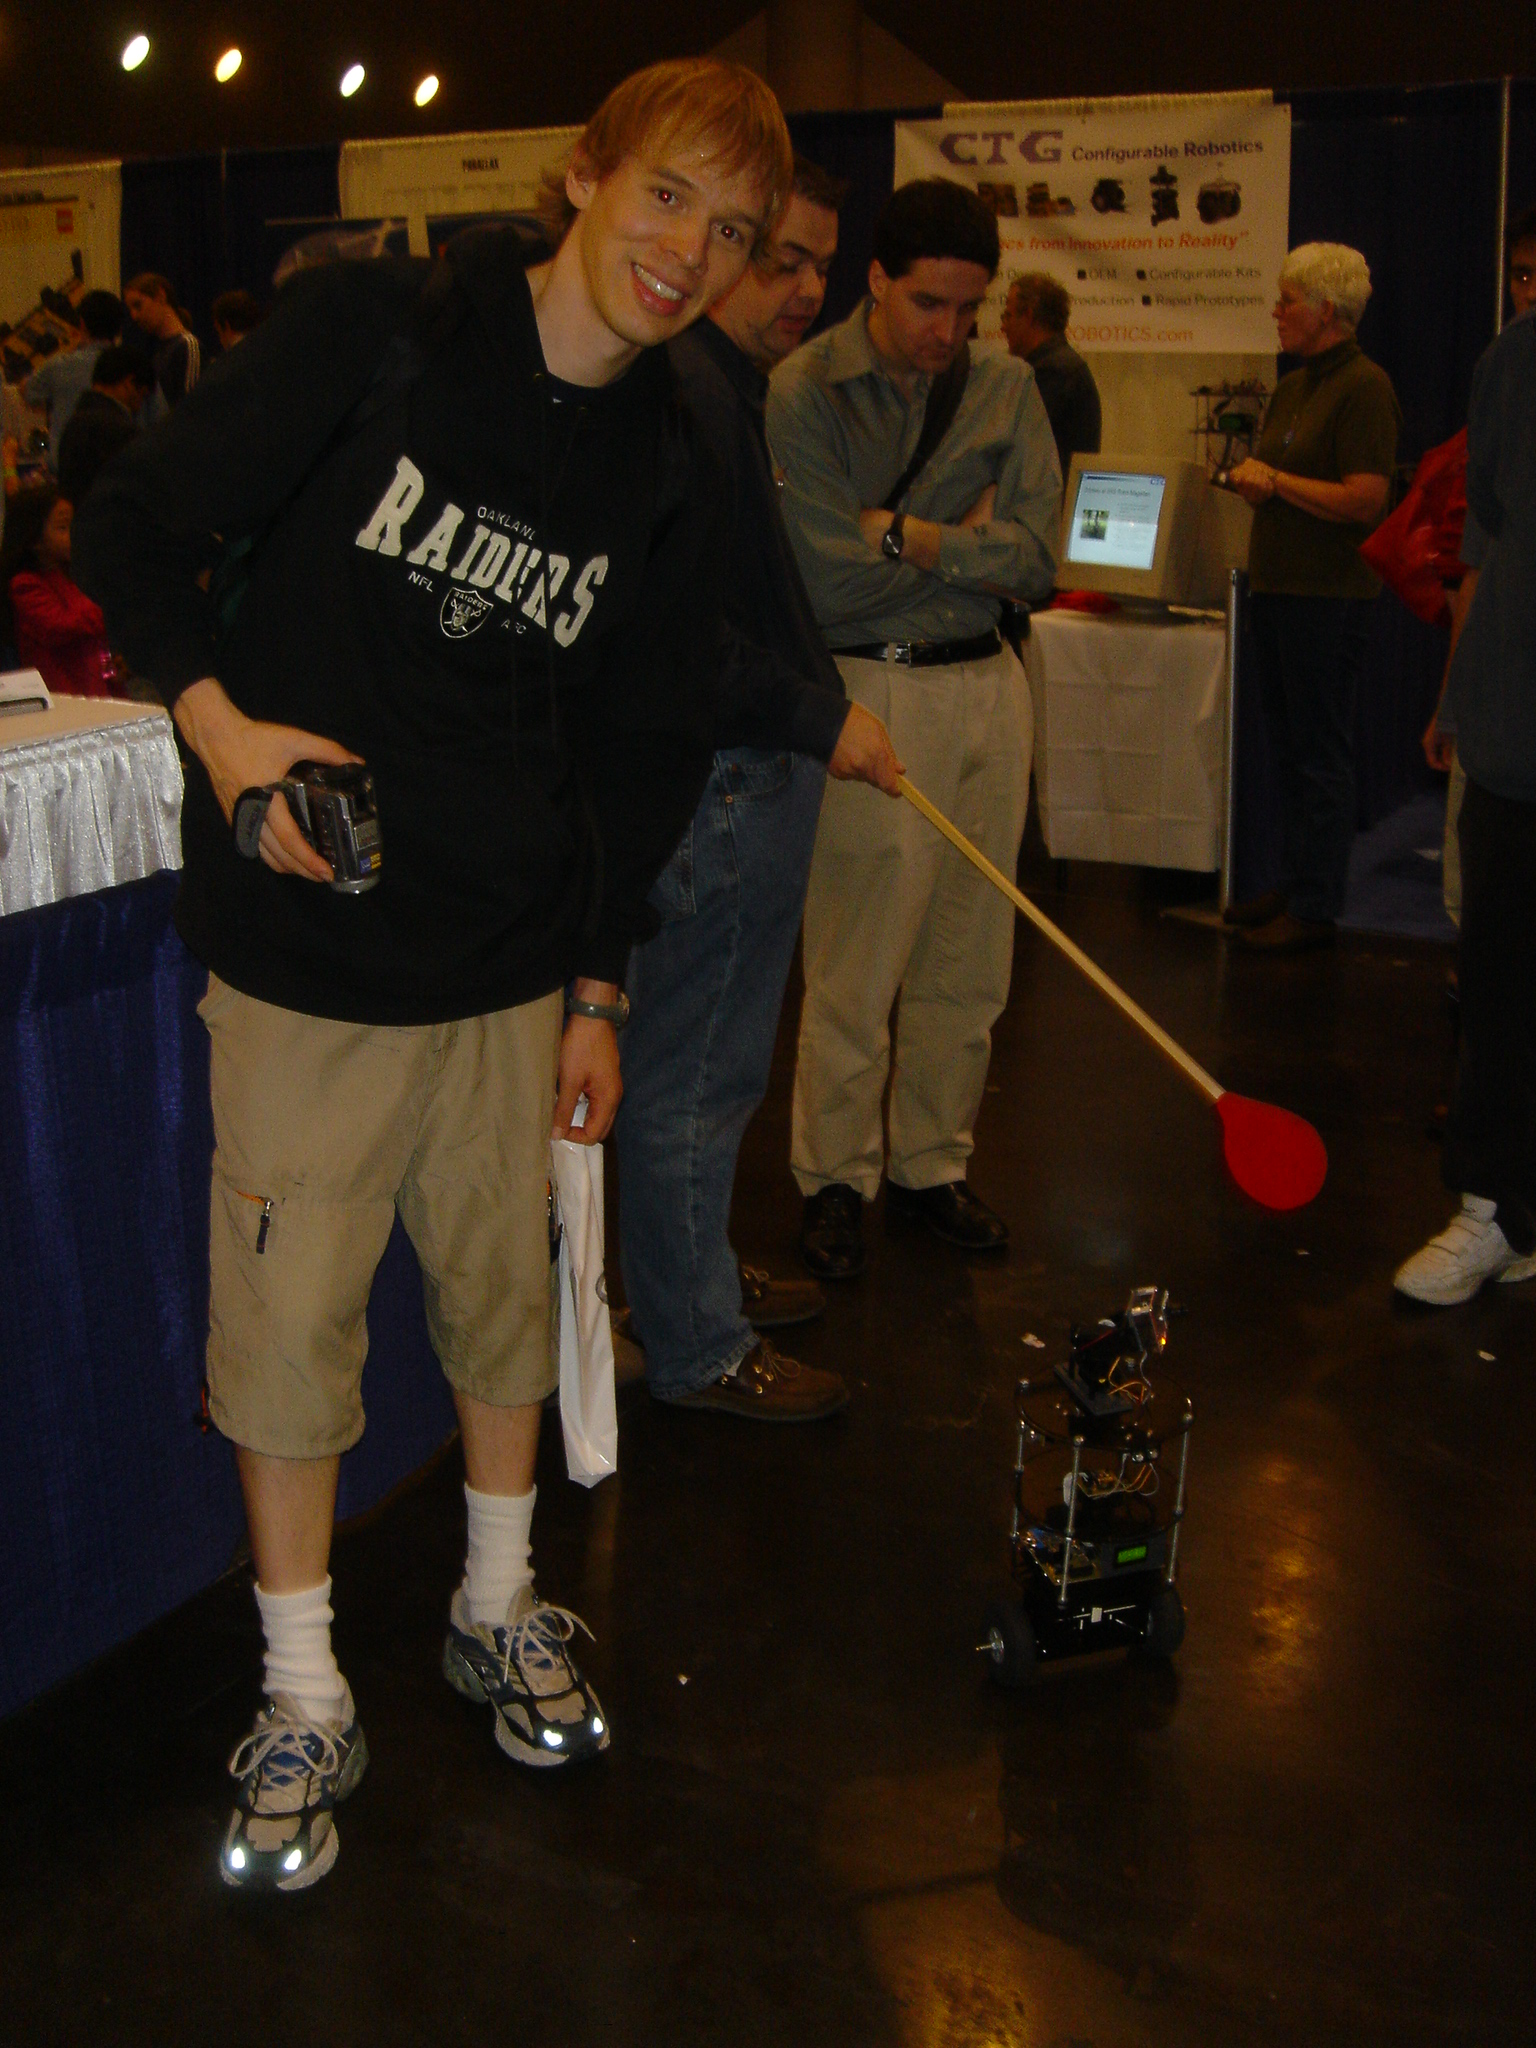 Trent with a small mobile robot